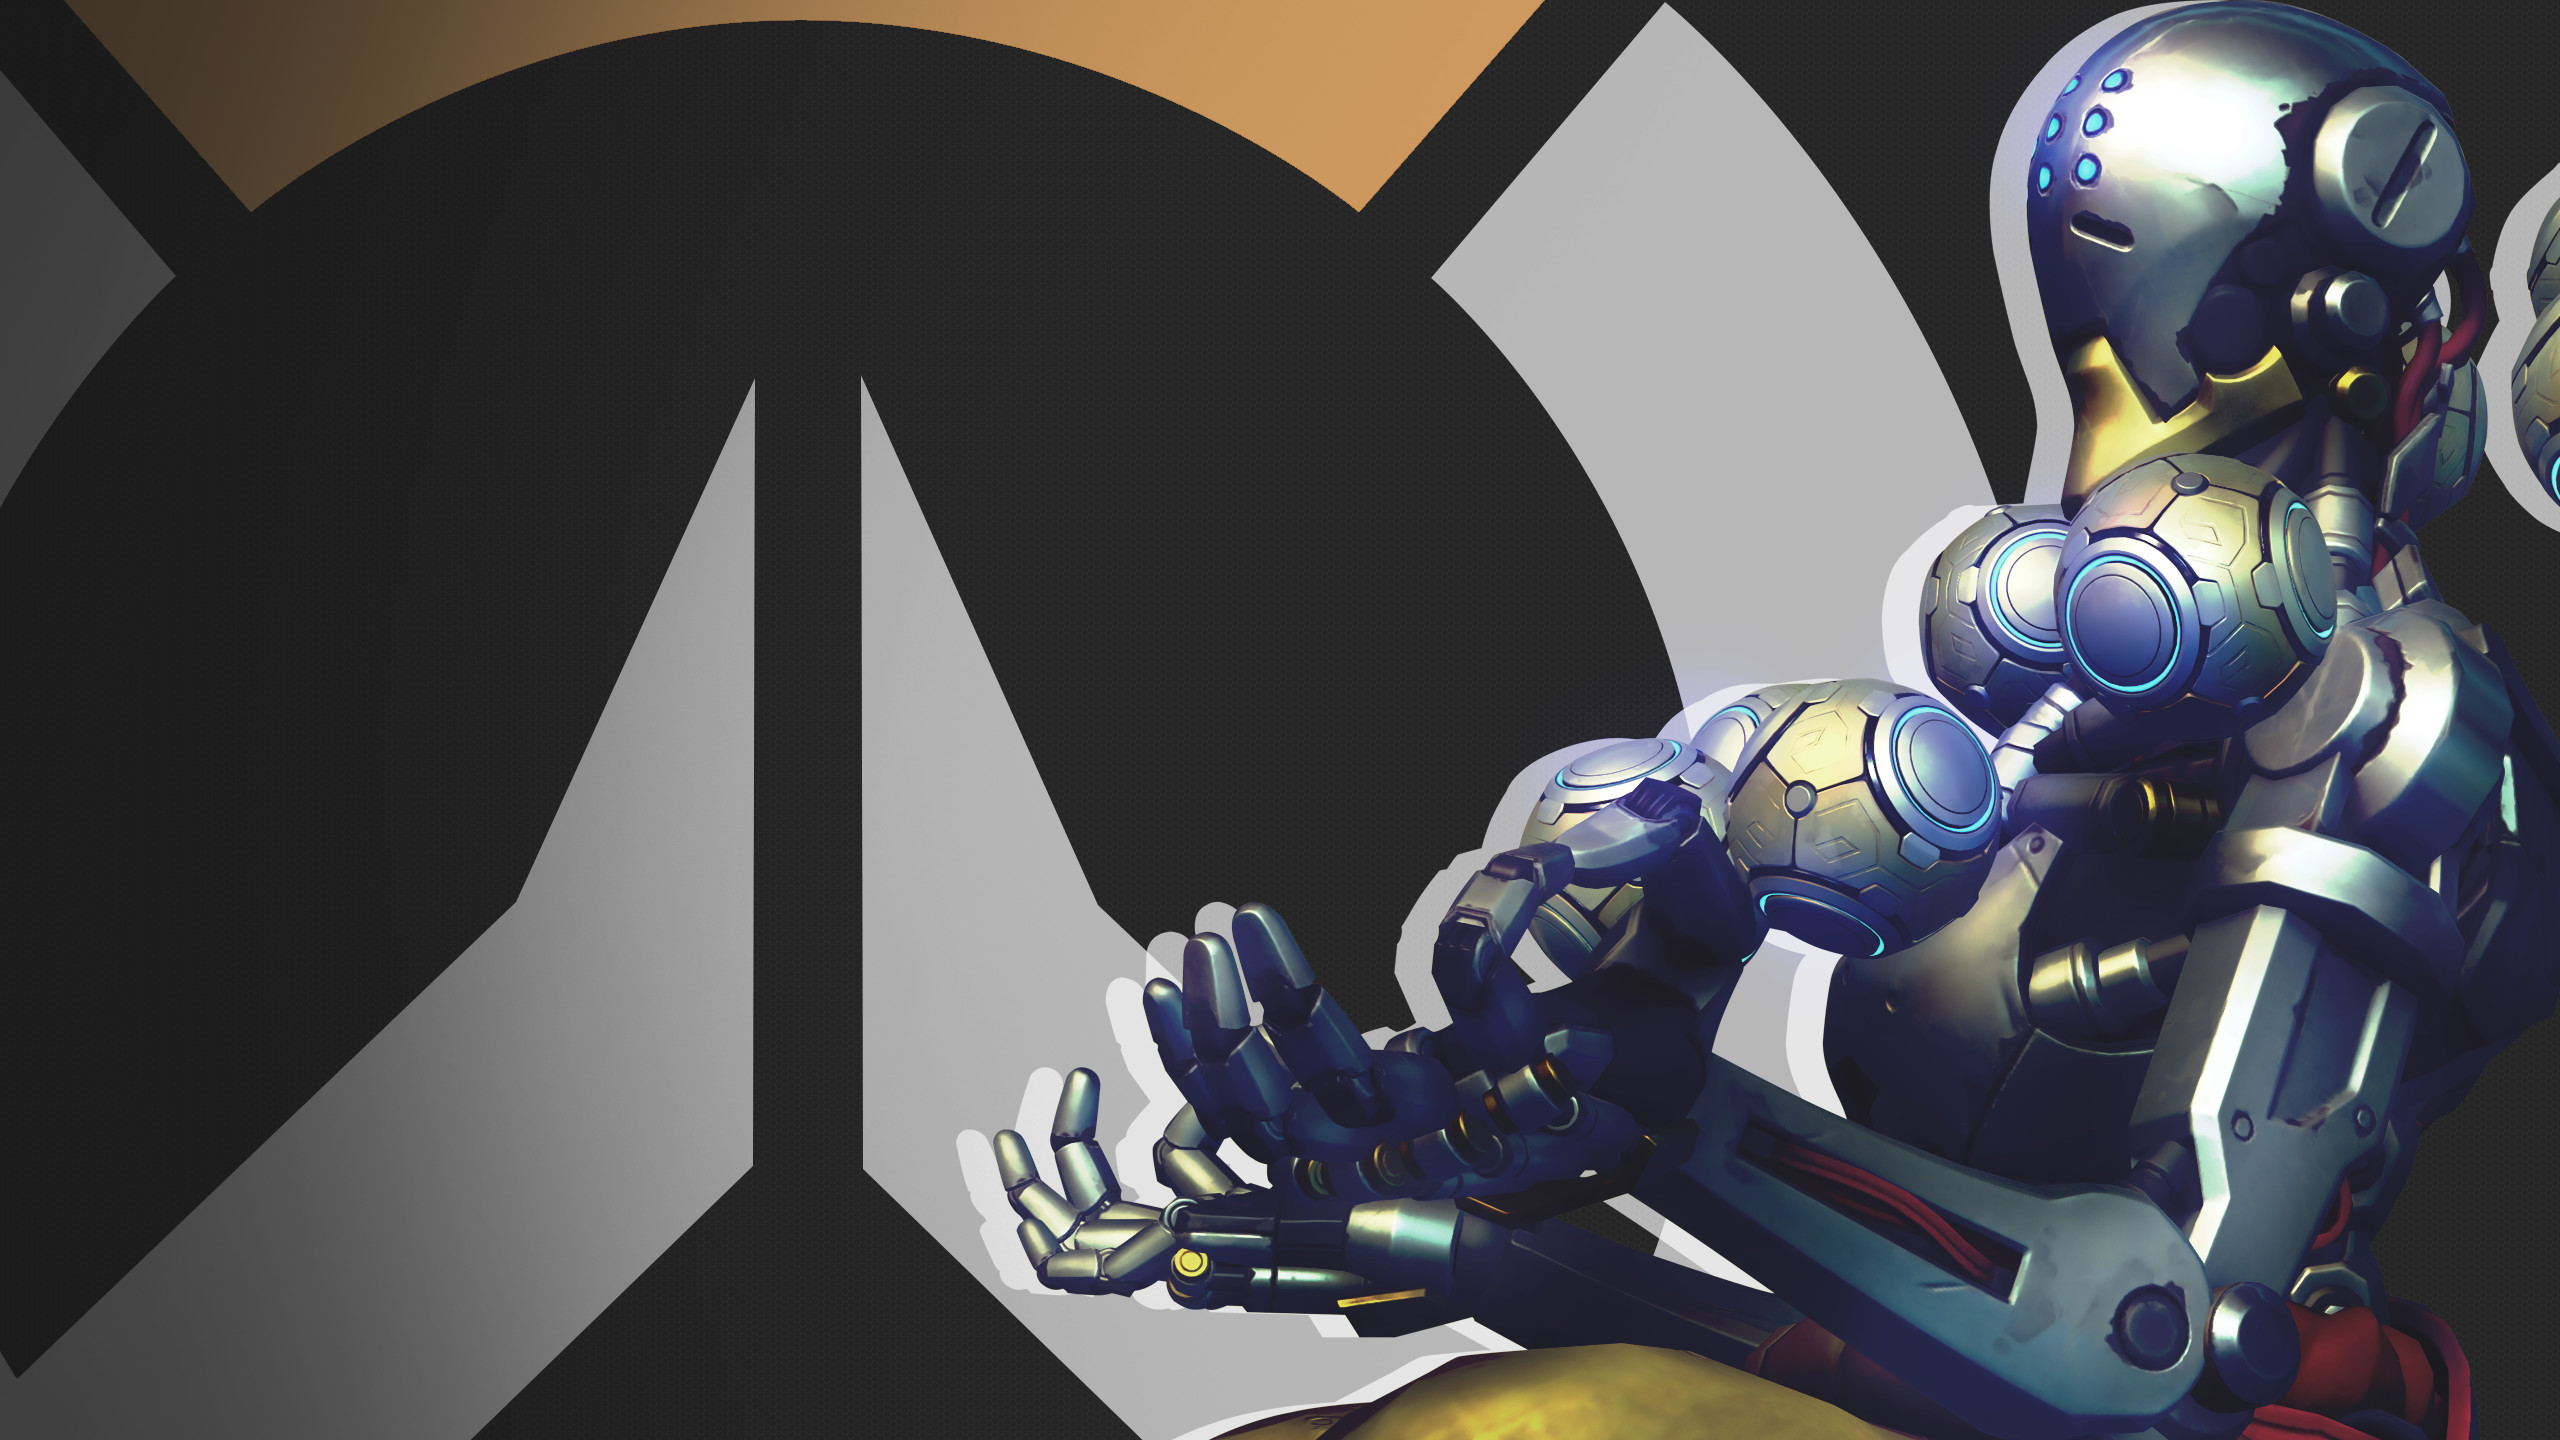 2560x1440 ... Overwatch Side Profile Wallpaper - Zenyatta by PT-Desu